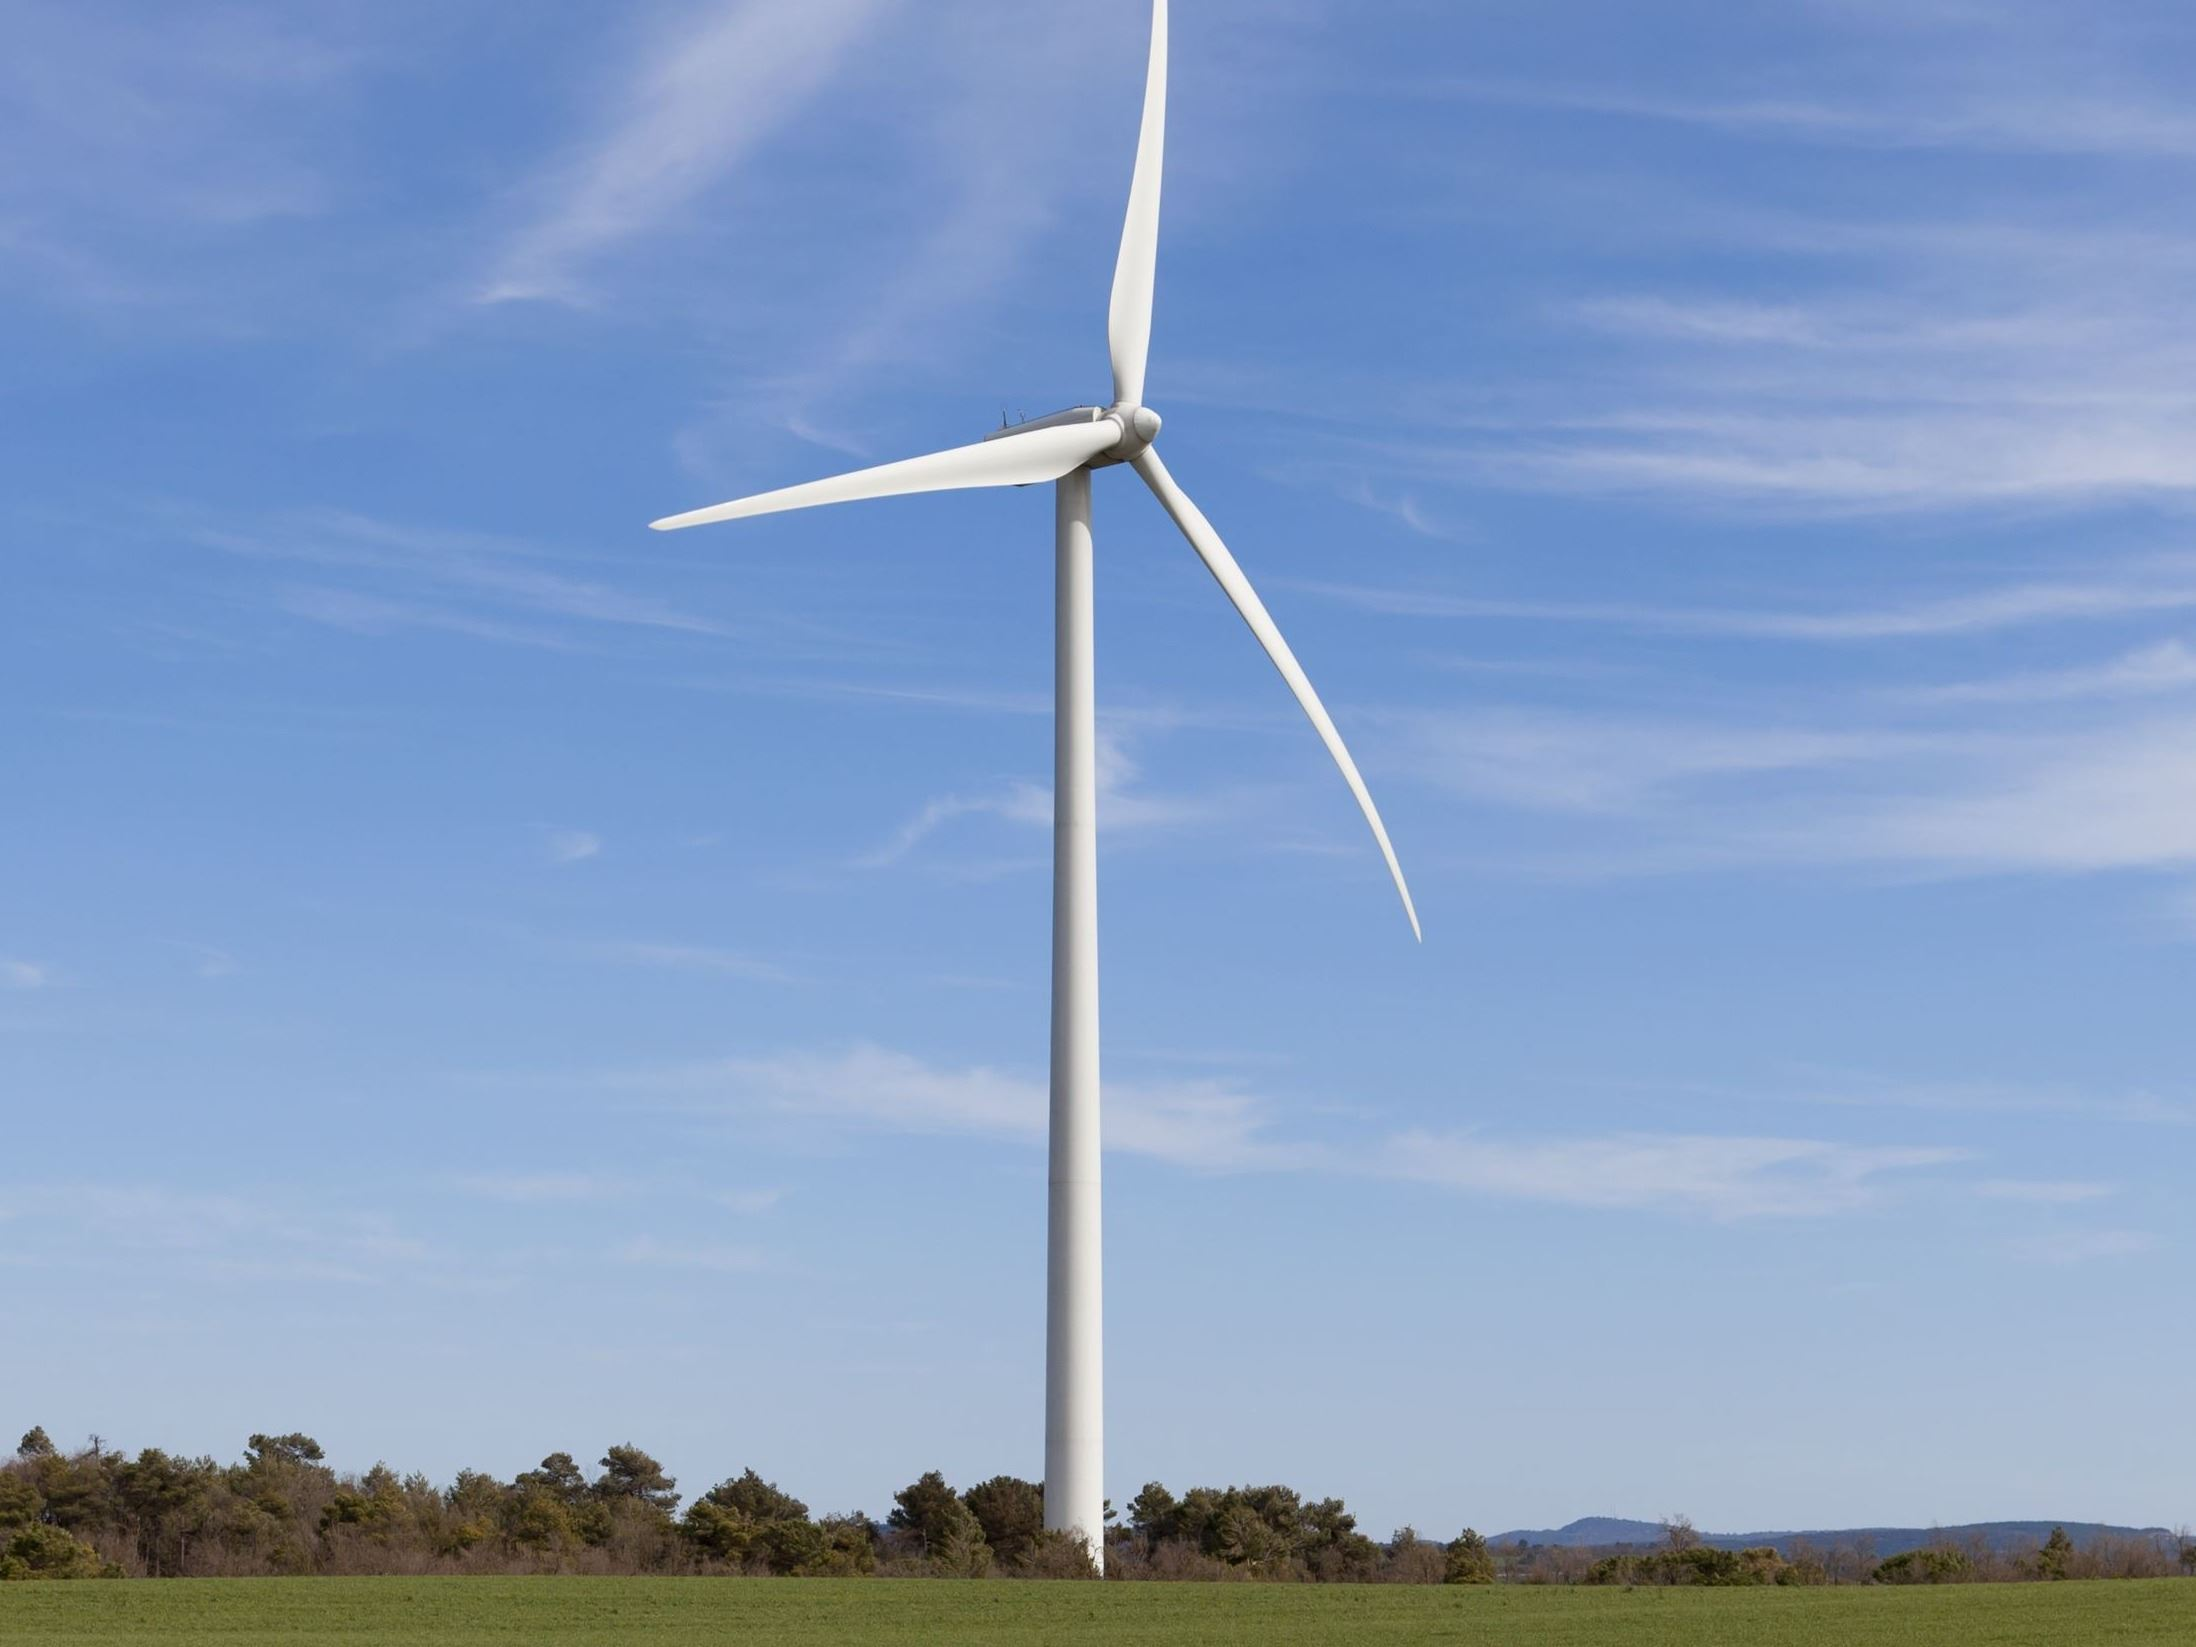 Zoning Regulations related to Commercial Wind Energy Conversion Systems